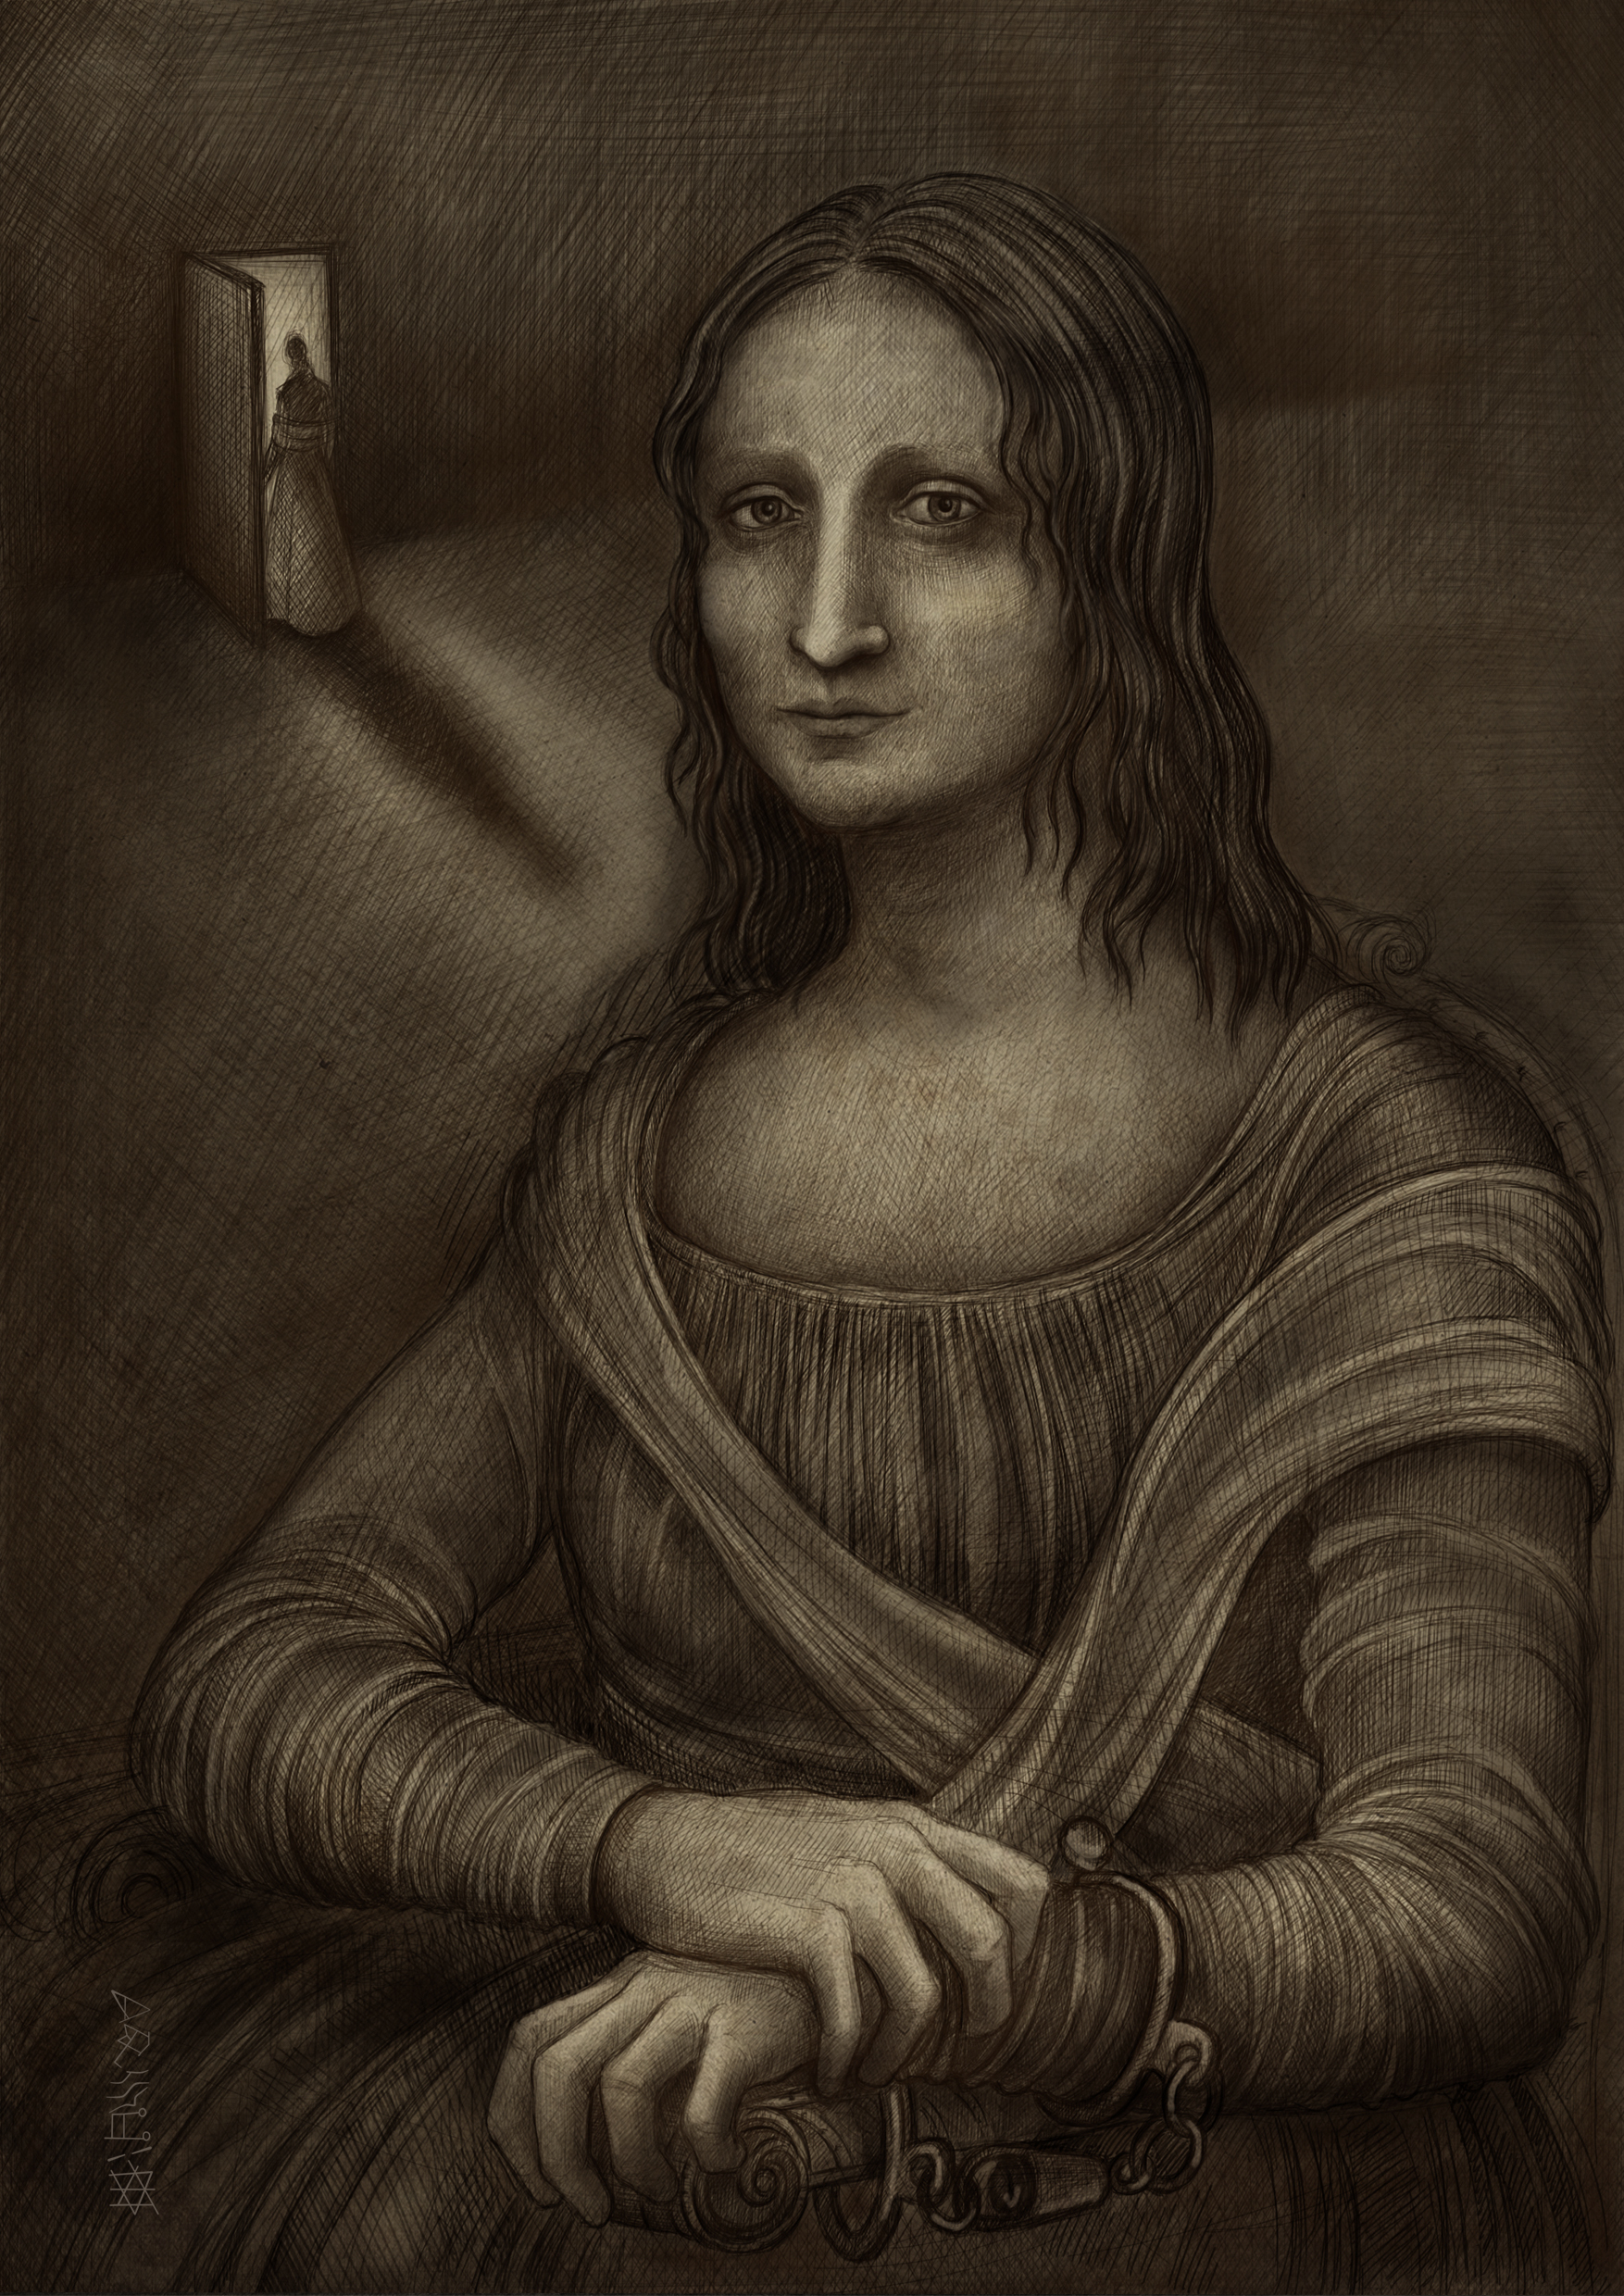 La Gioconda, 29.7 x 42cm 300 dpi, Digital Painting, Summer 2014